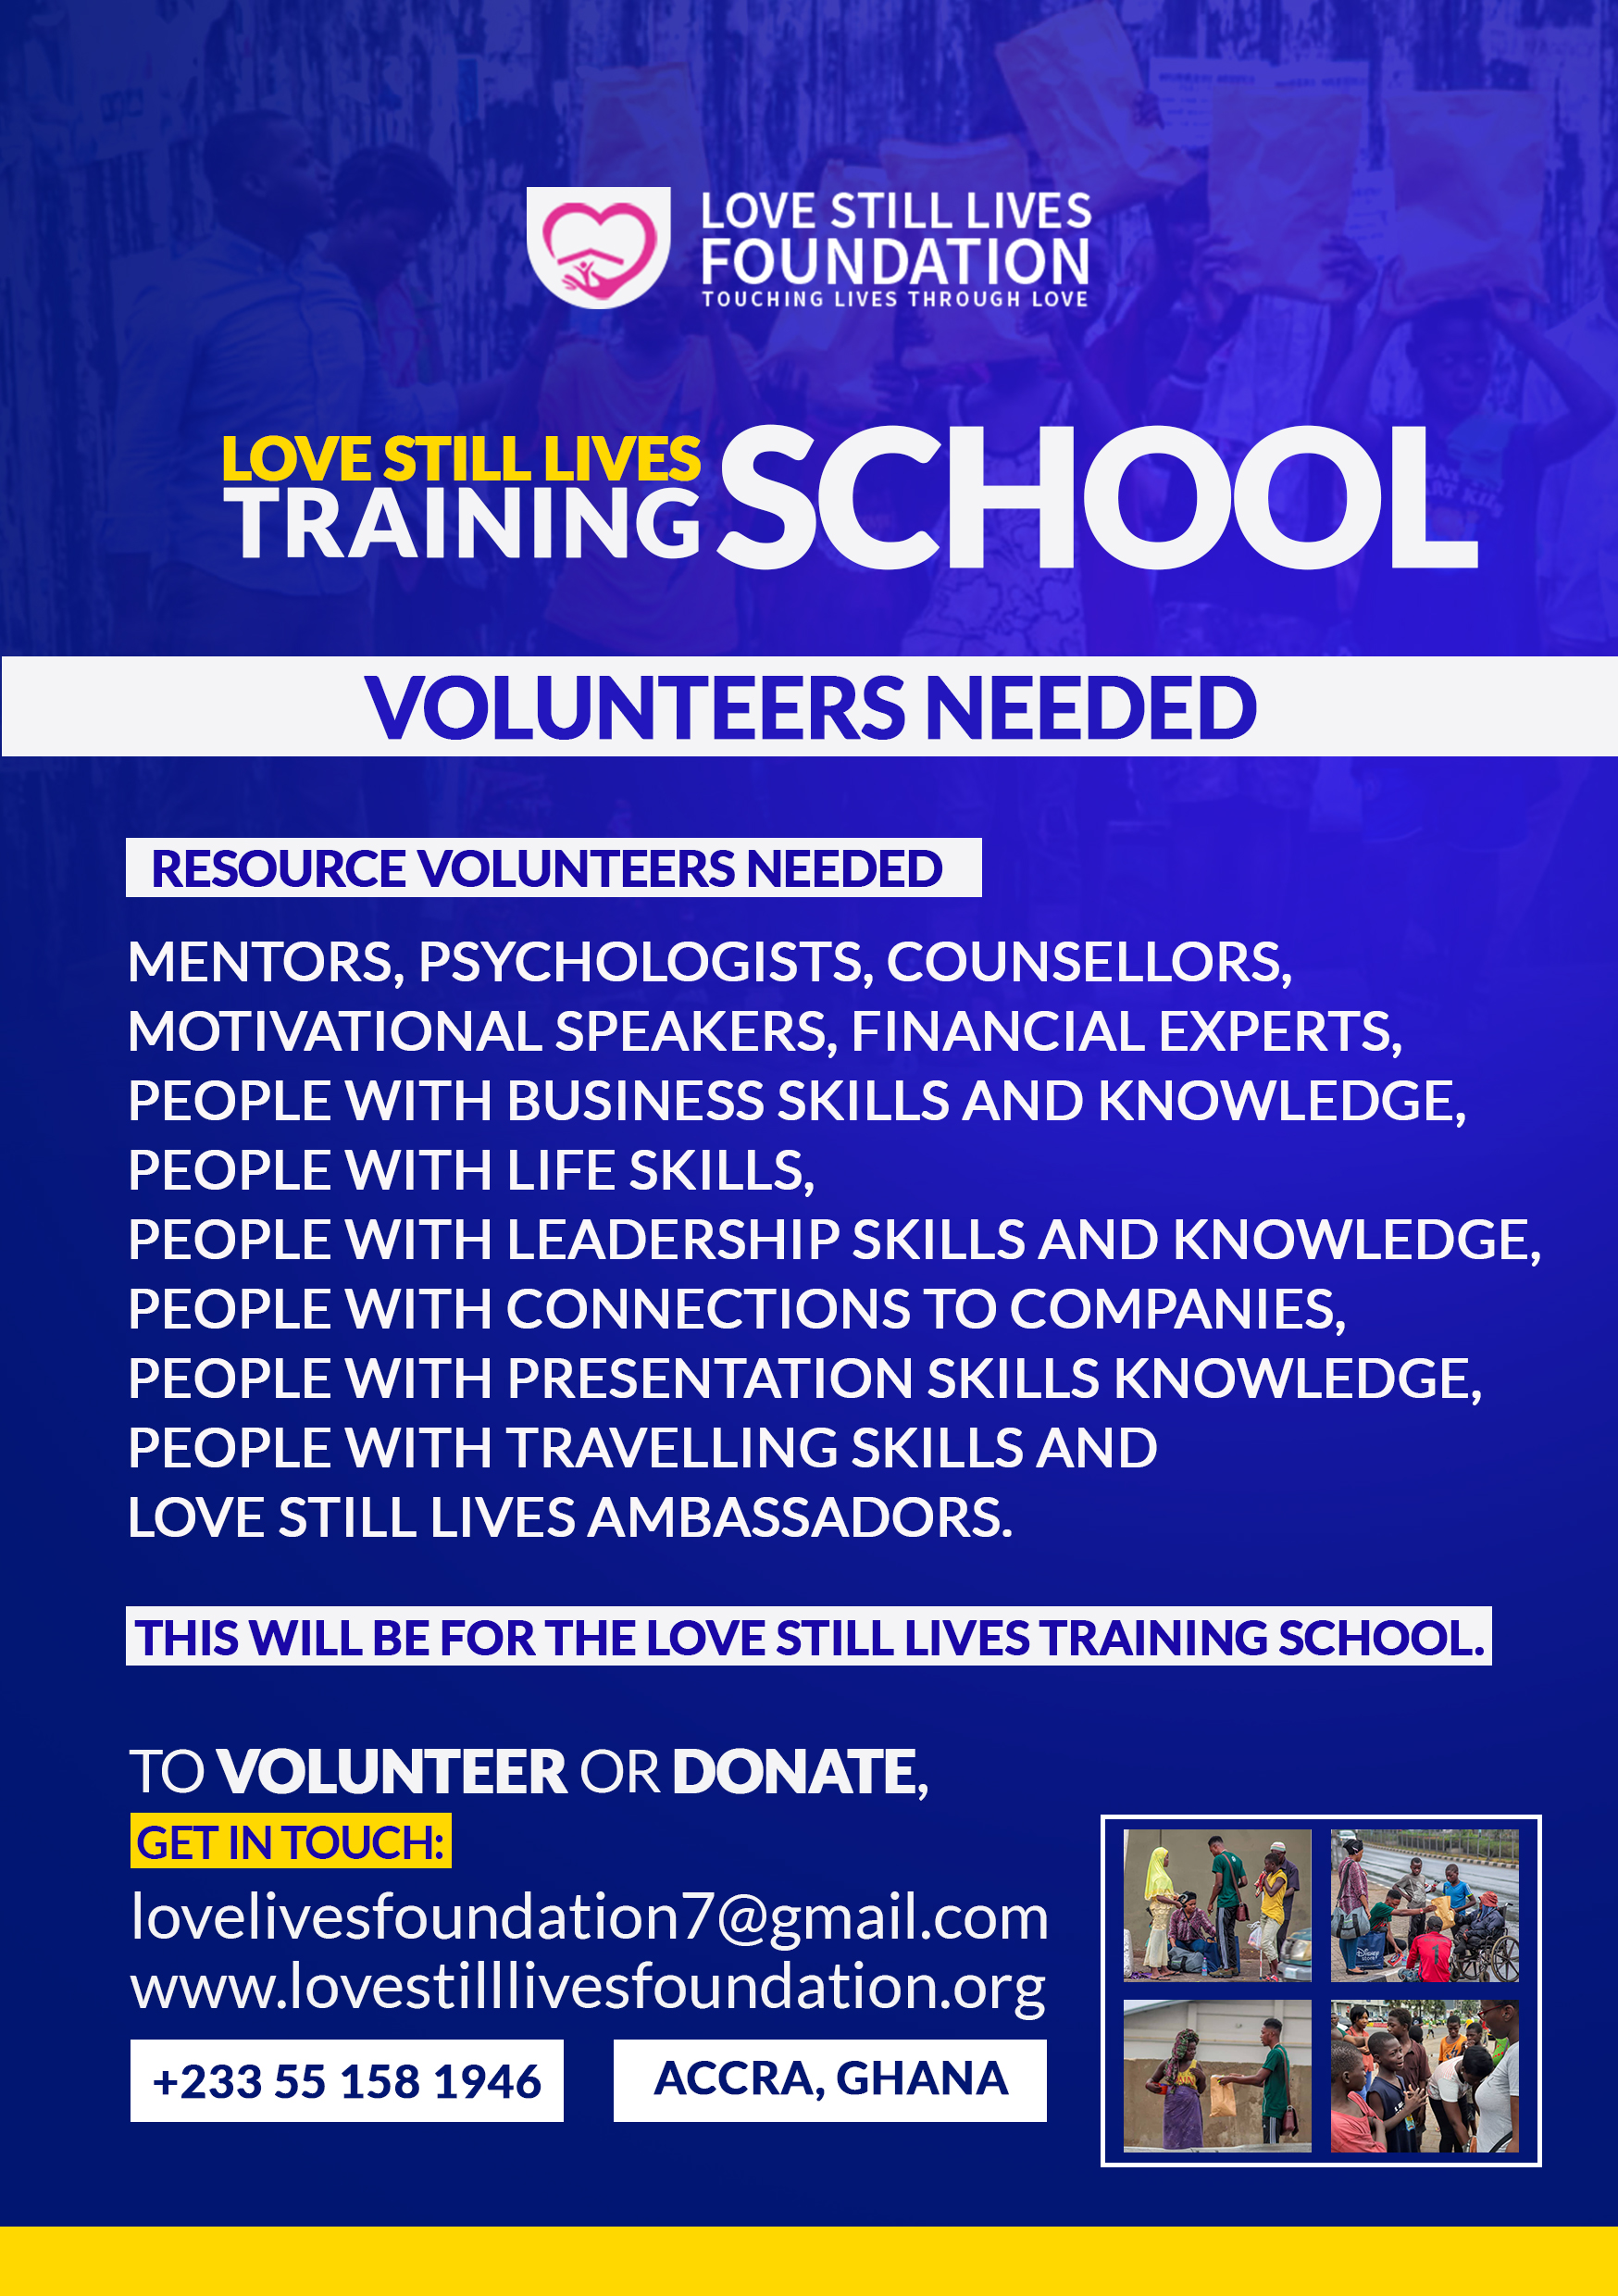 Volunteers for Training School